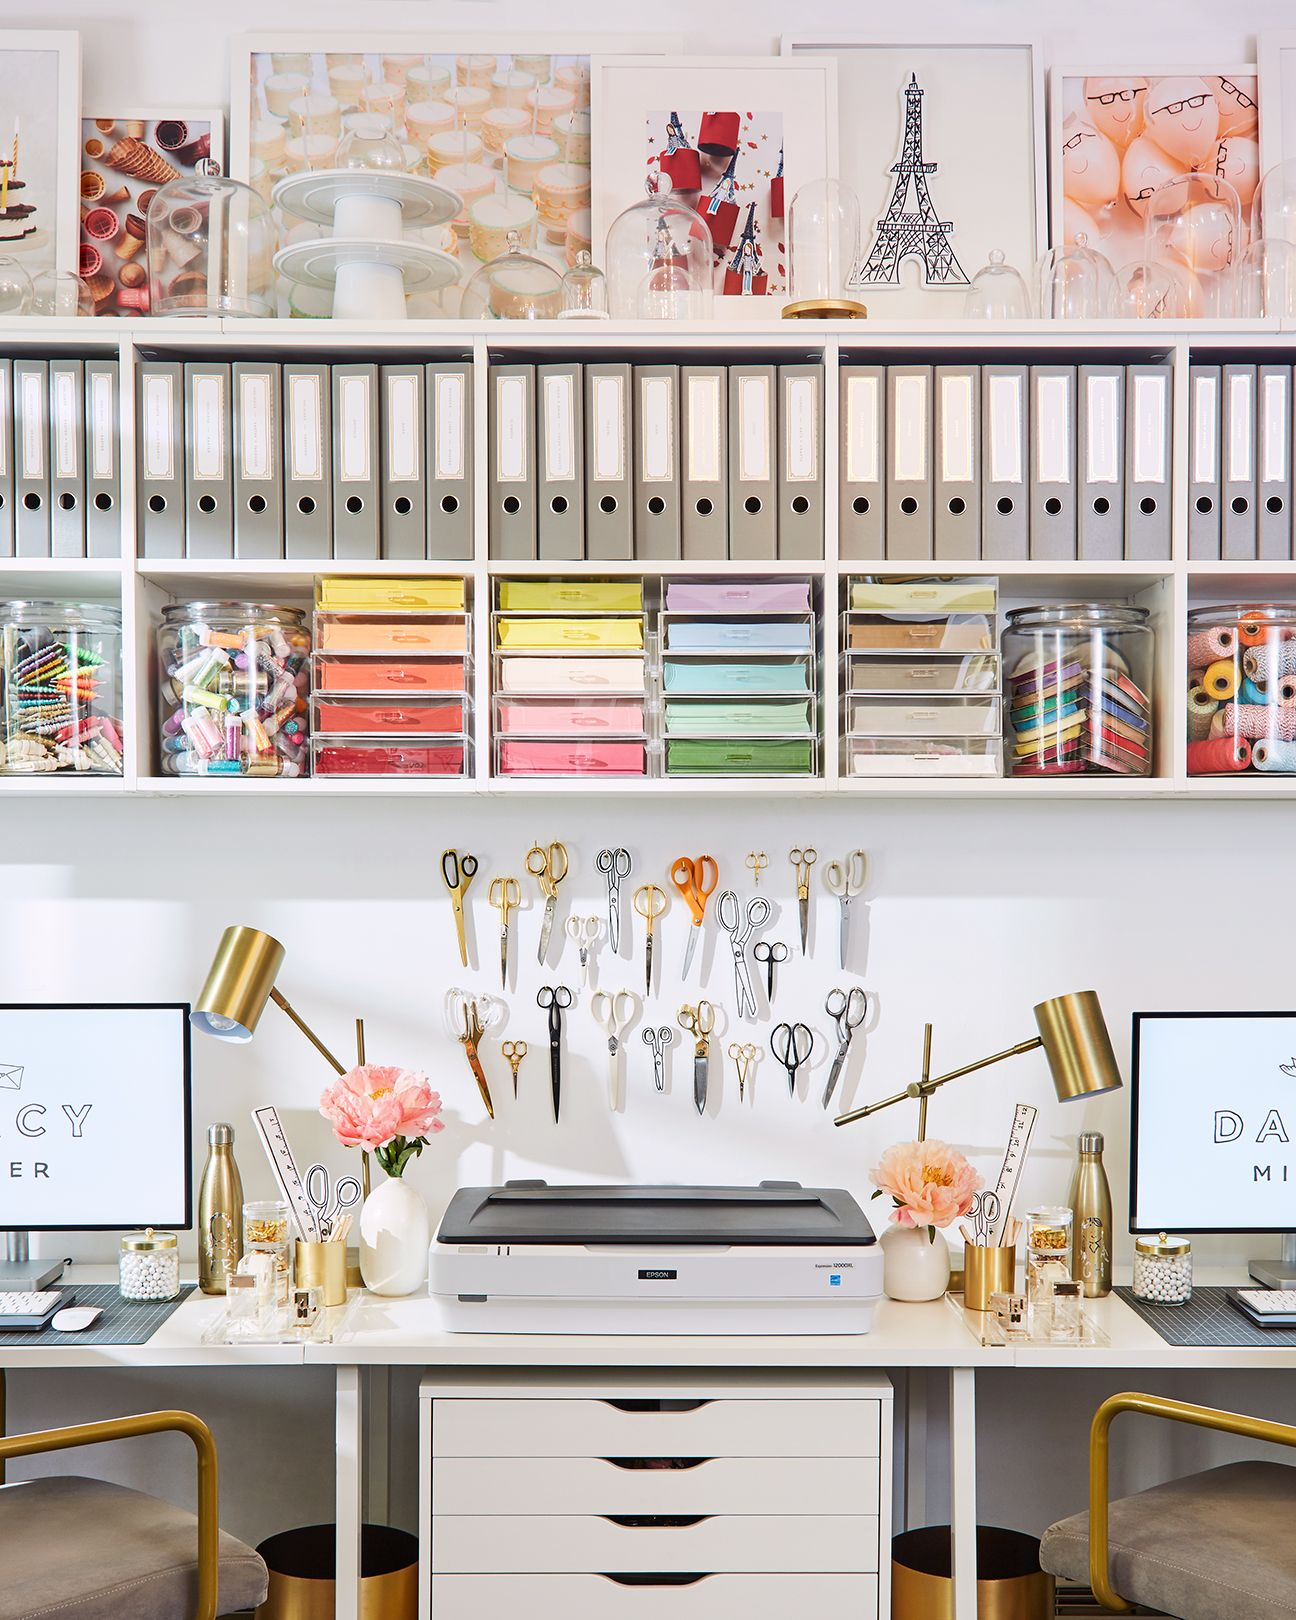 Photo of Go Inside Darcy Miller's Colorful, Whimsical New York City Studio—a Space 25 Years in the Making